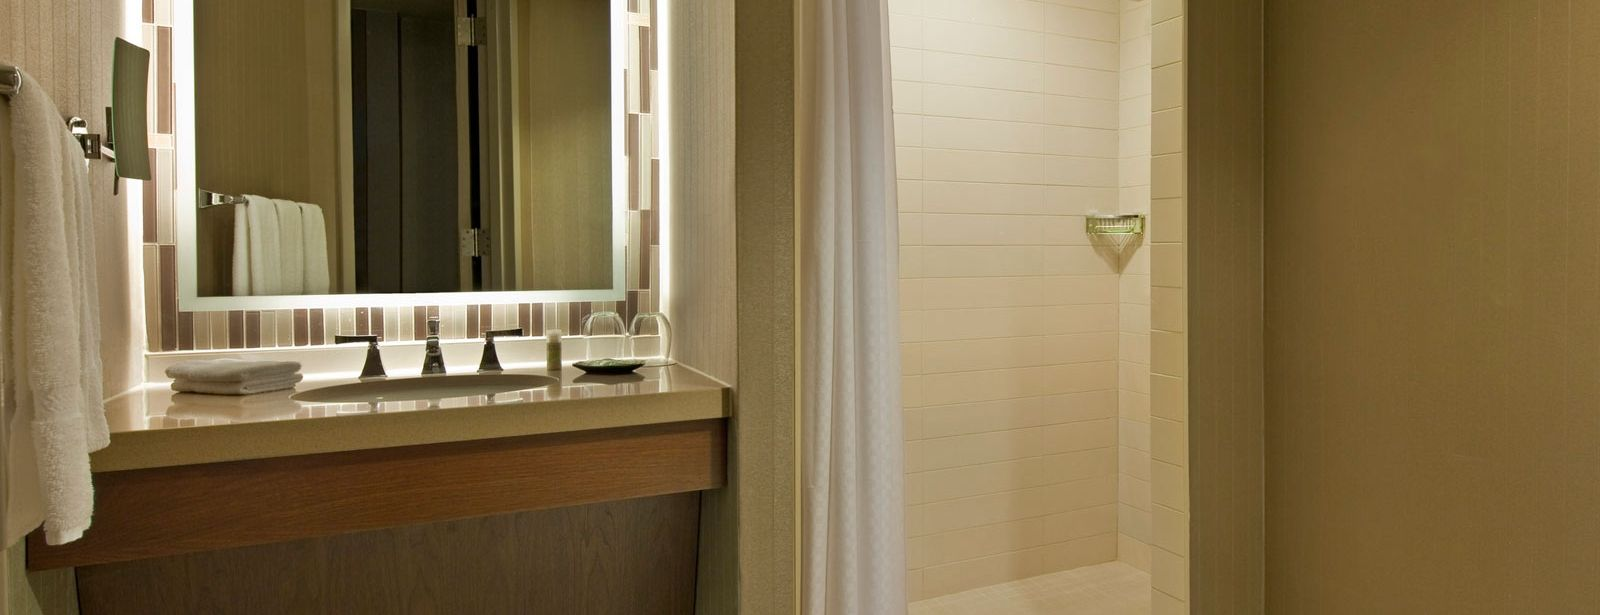 traditional guestroom - The Westin Peachtree Plaza